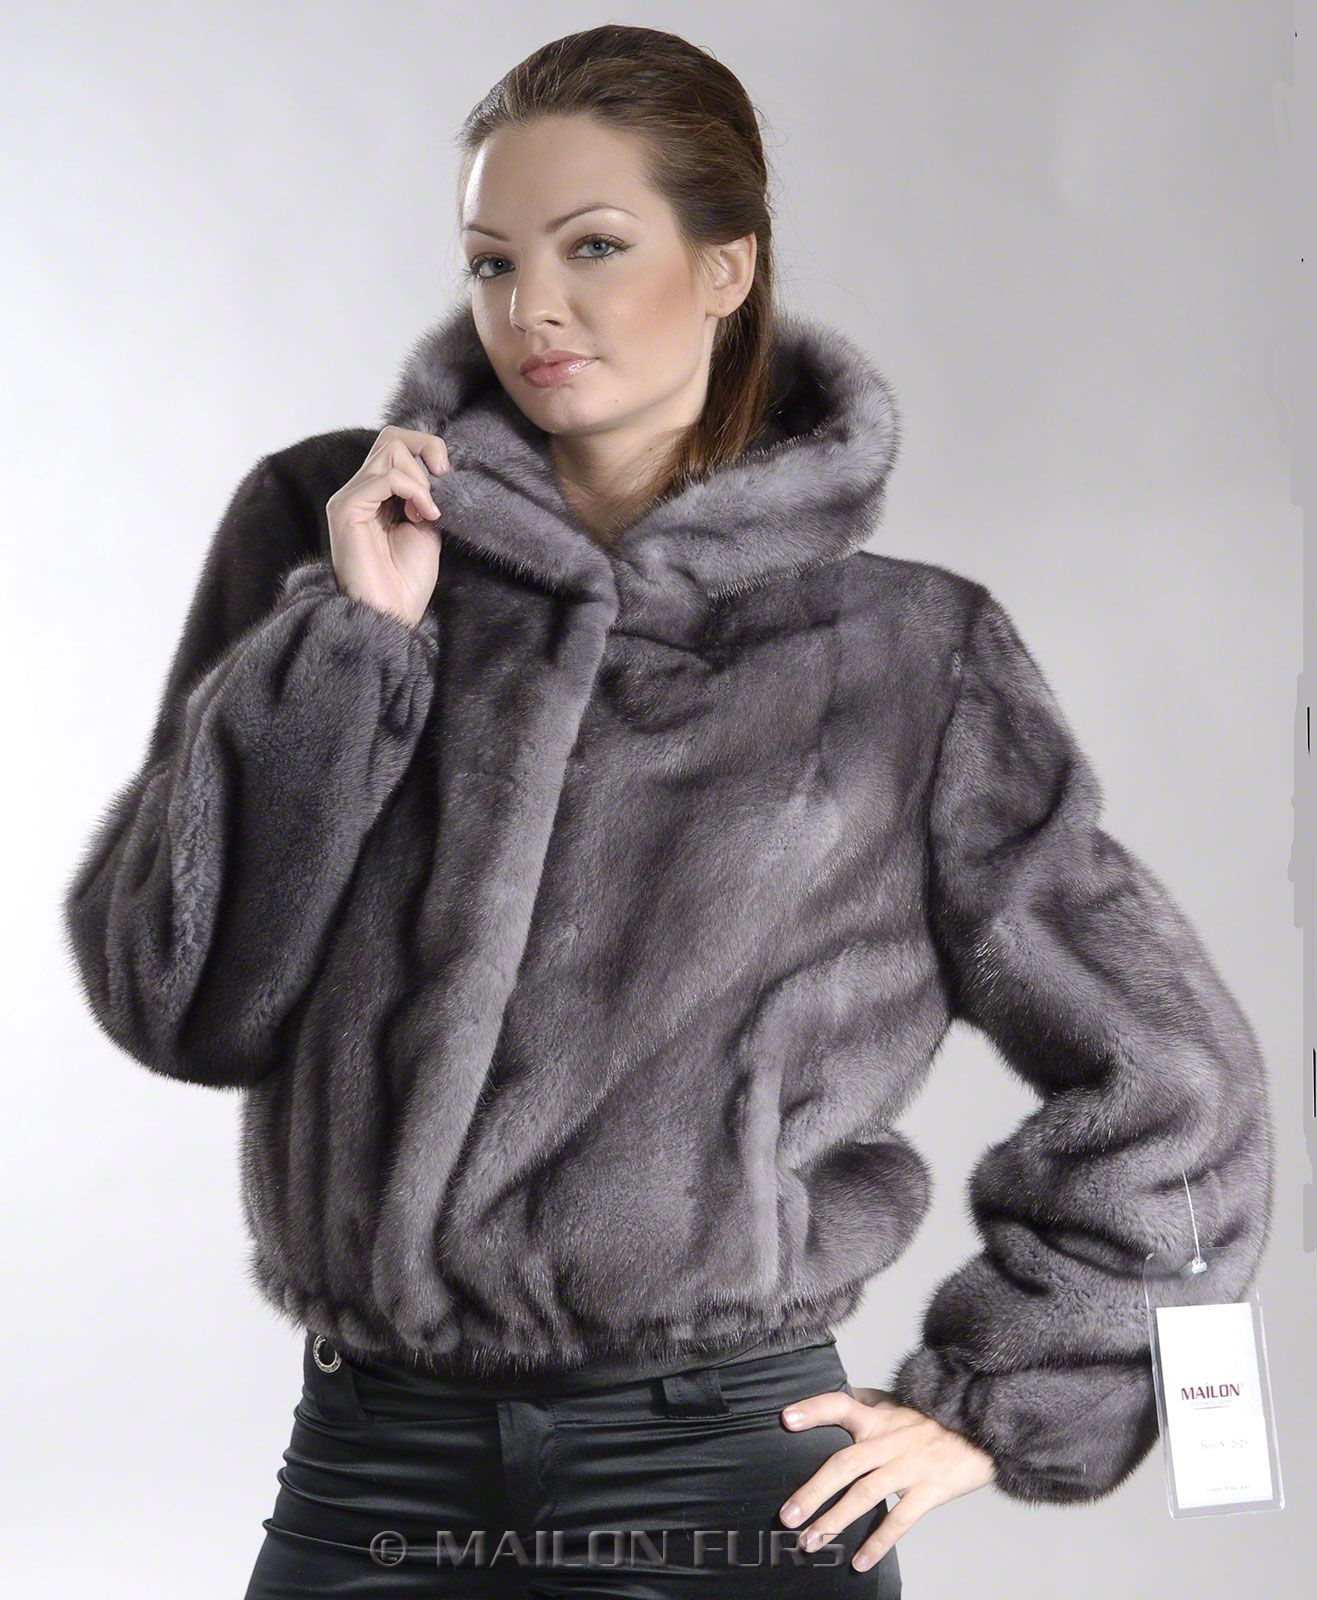 hooded fur (With images) Fur street style, Jackets, Fur